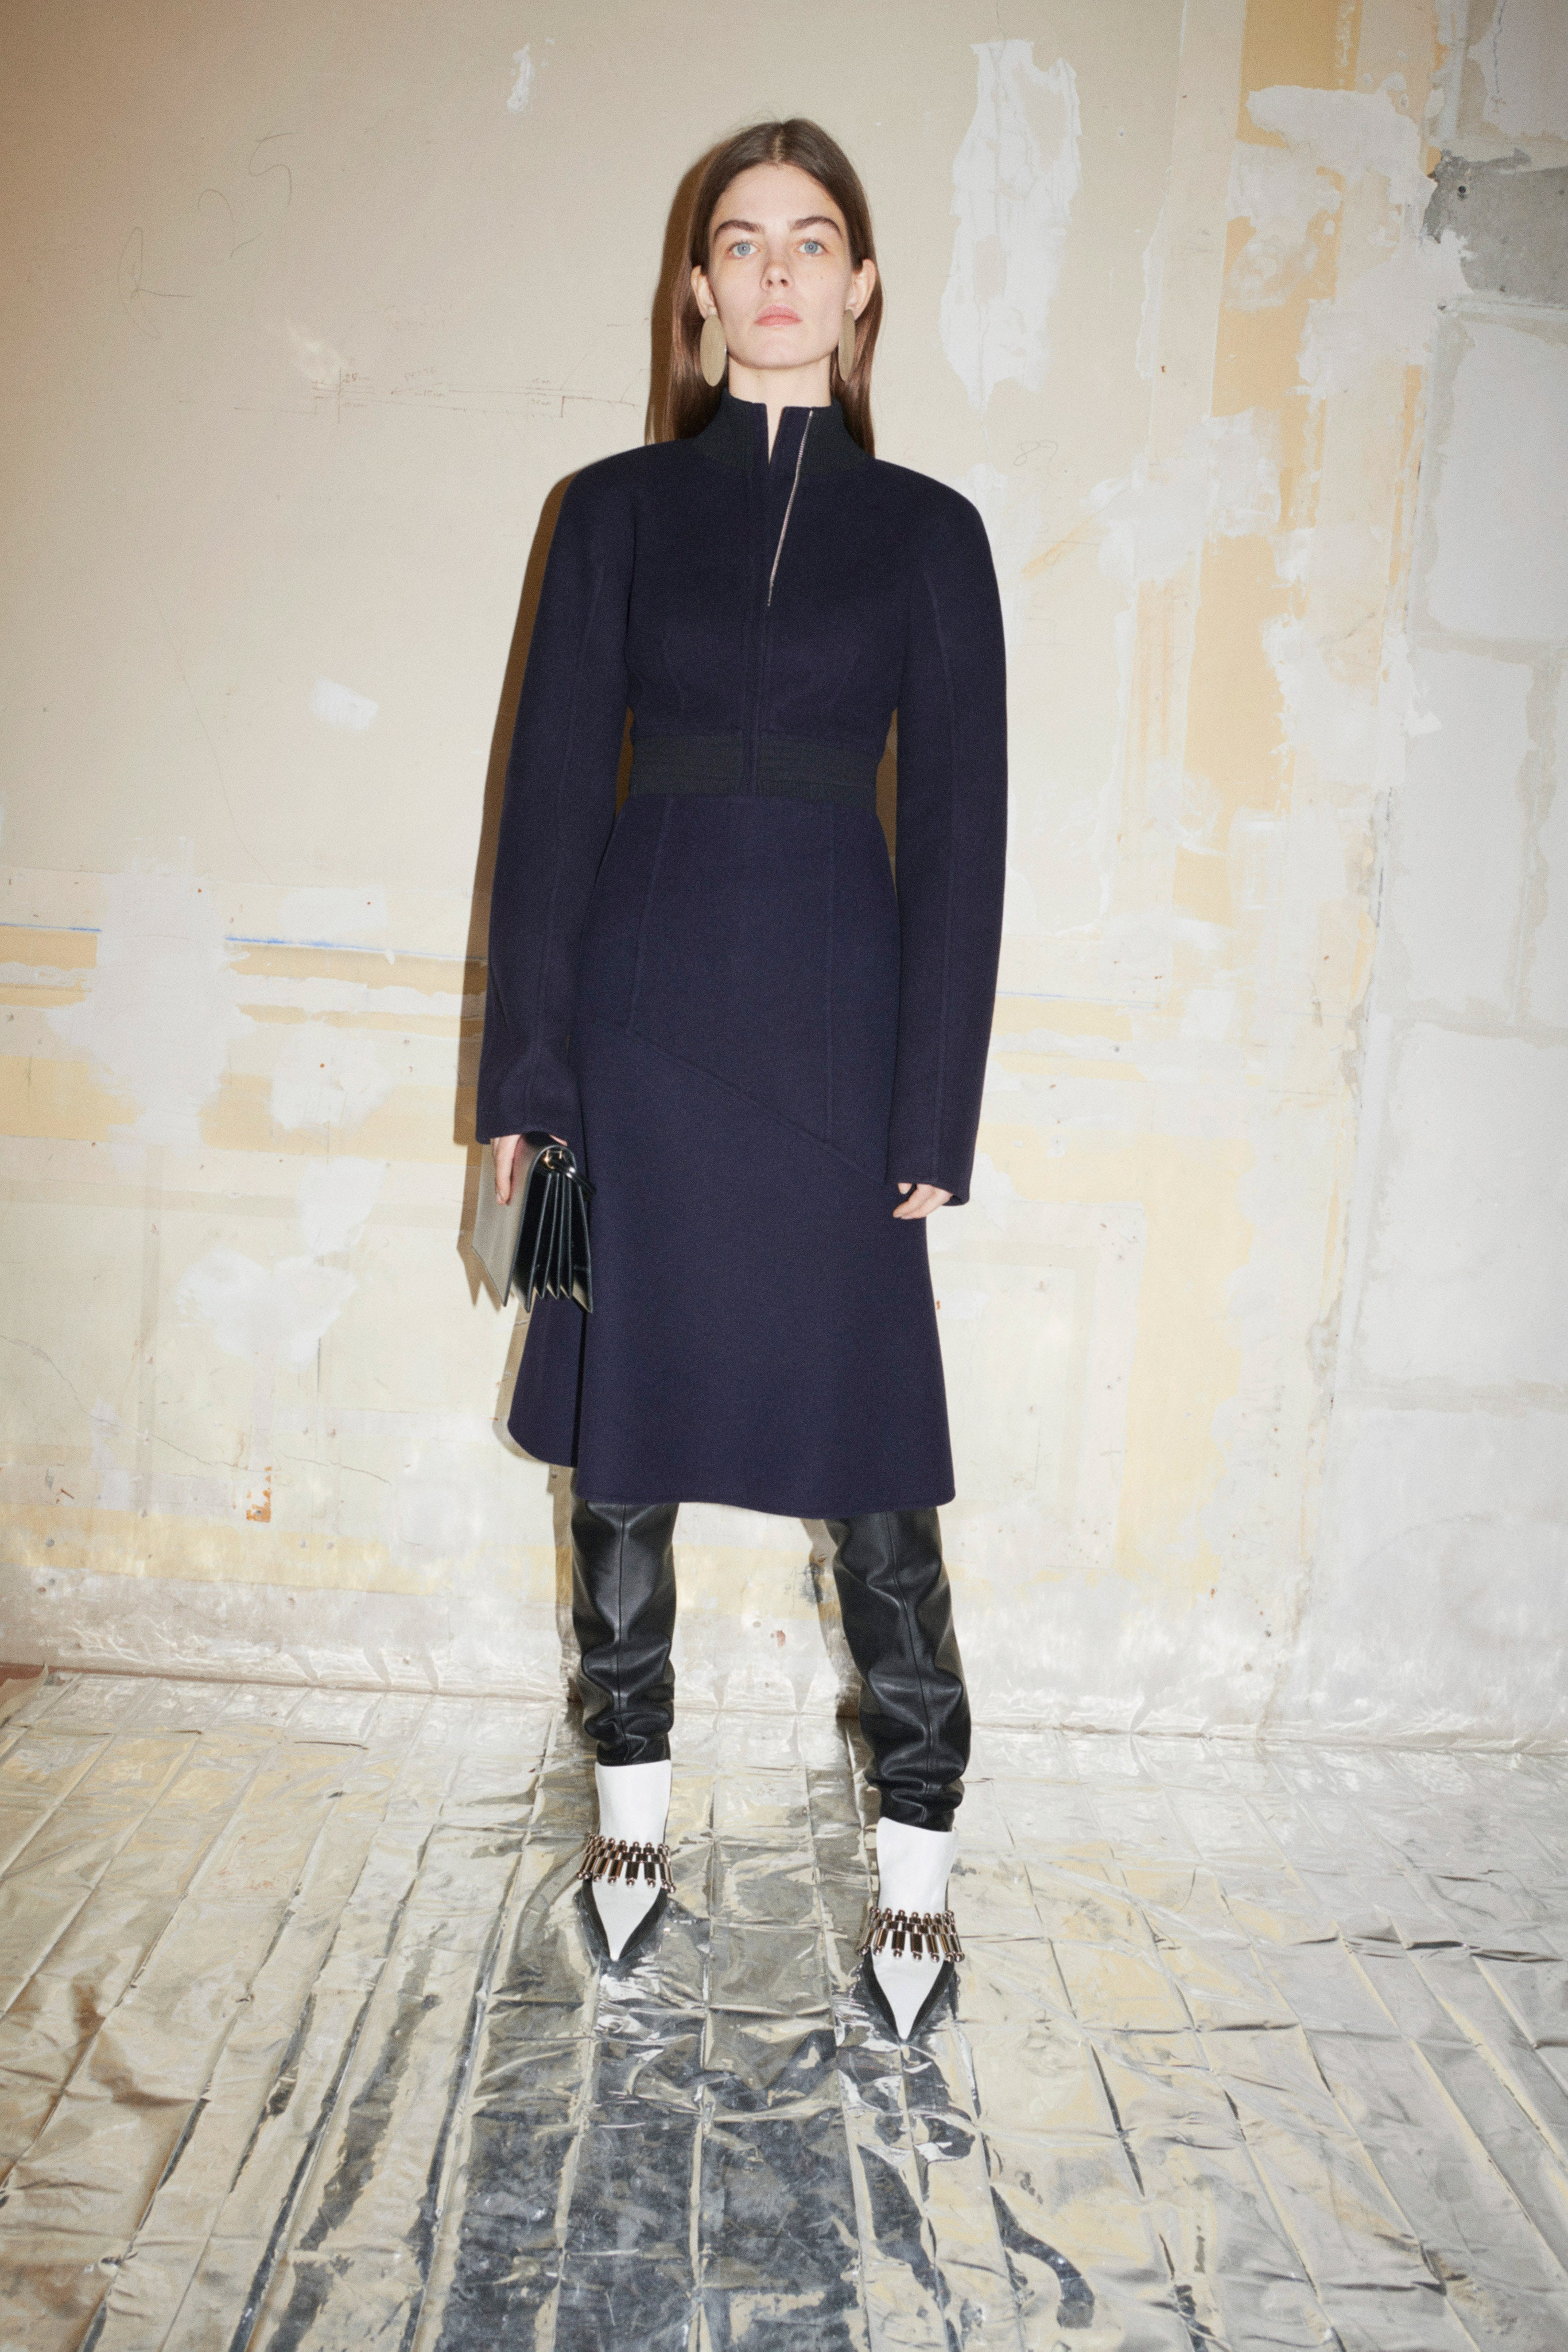 For walks in the fresh air: A seasonal collection of Jil Sander arrived at Asthik (photo 28)